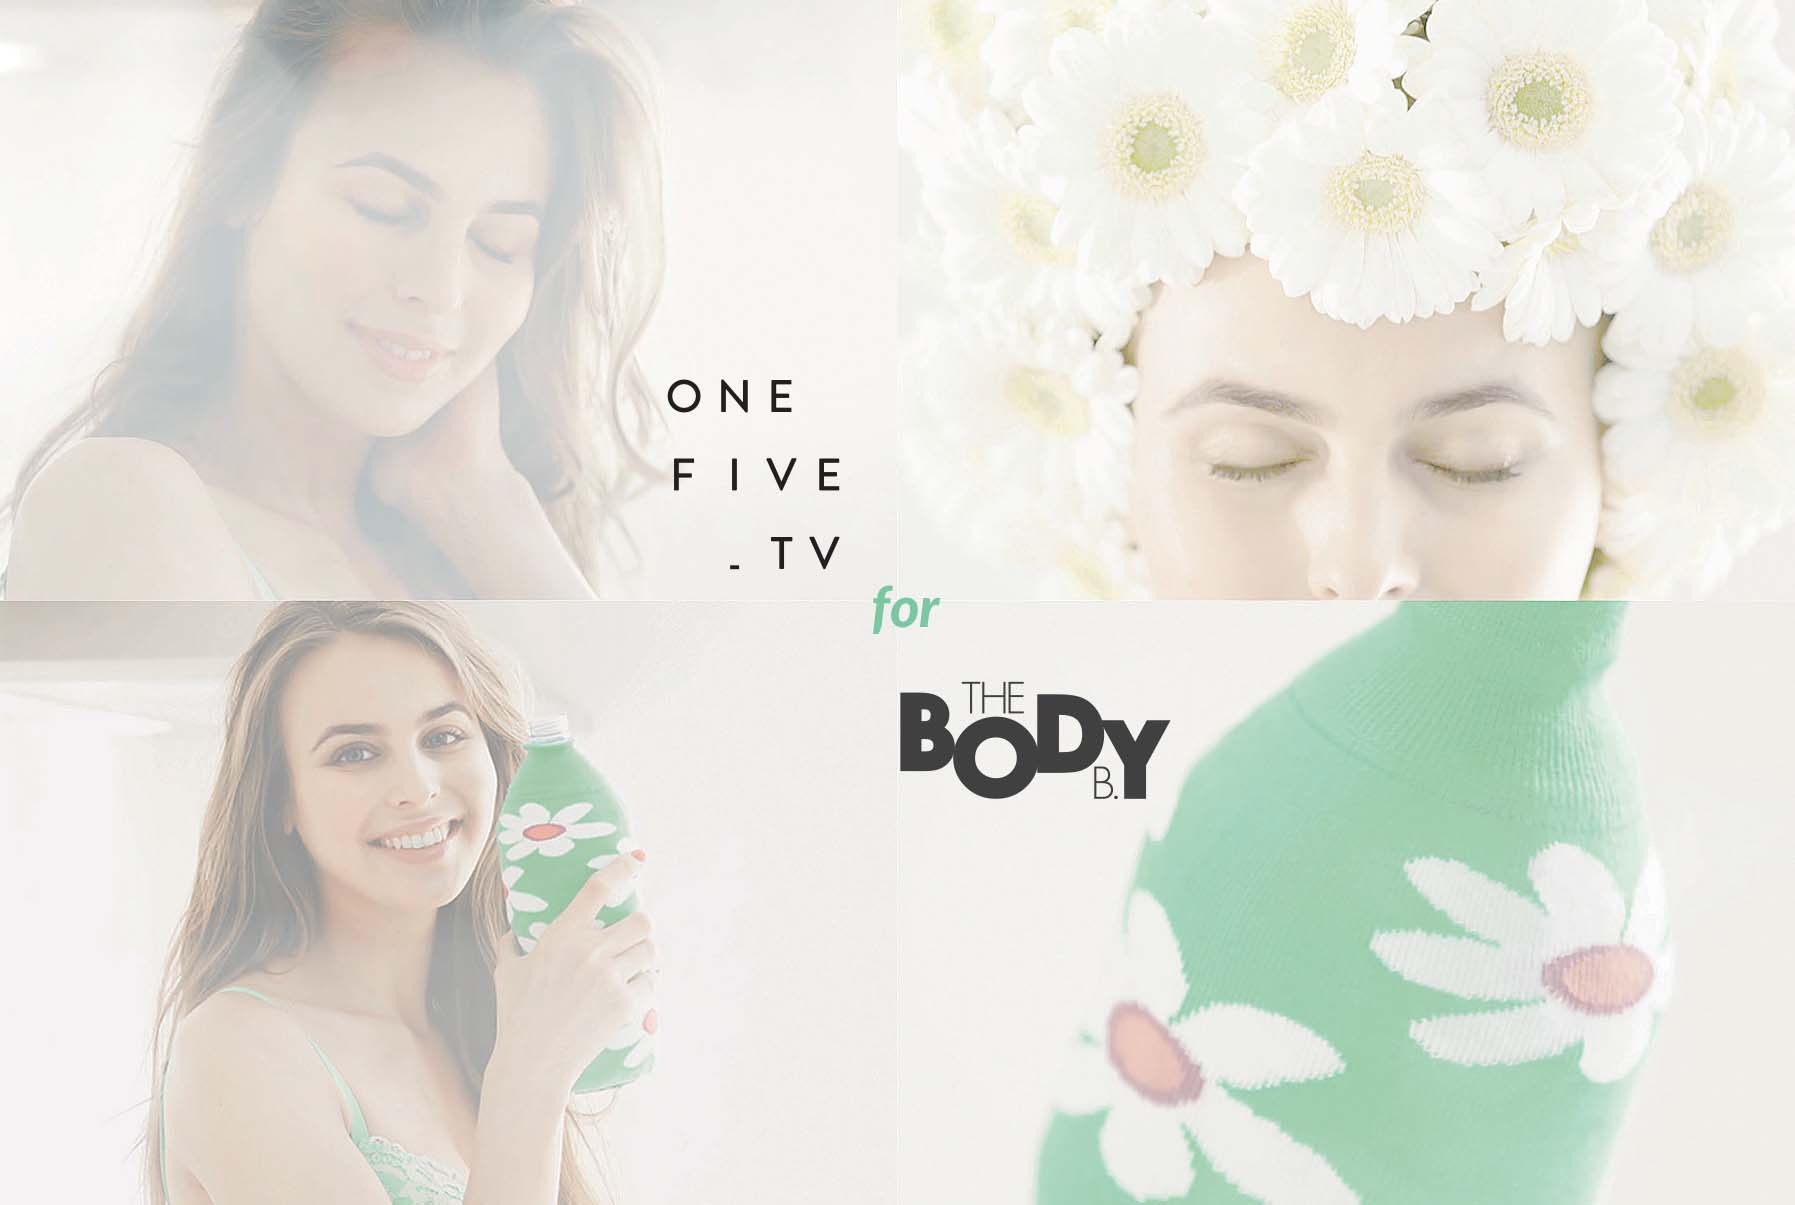 #Green OneFive The Body B